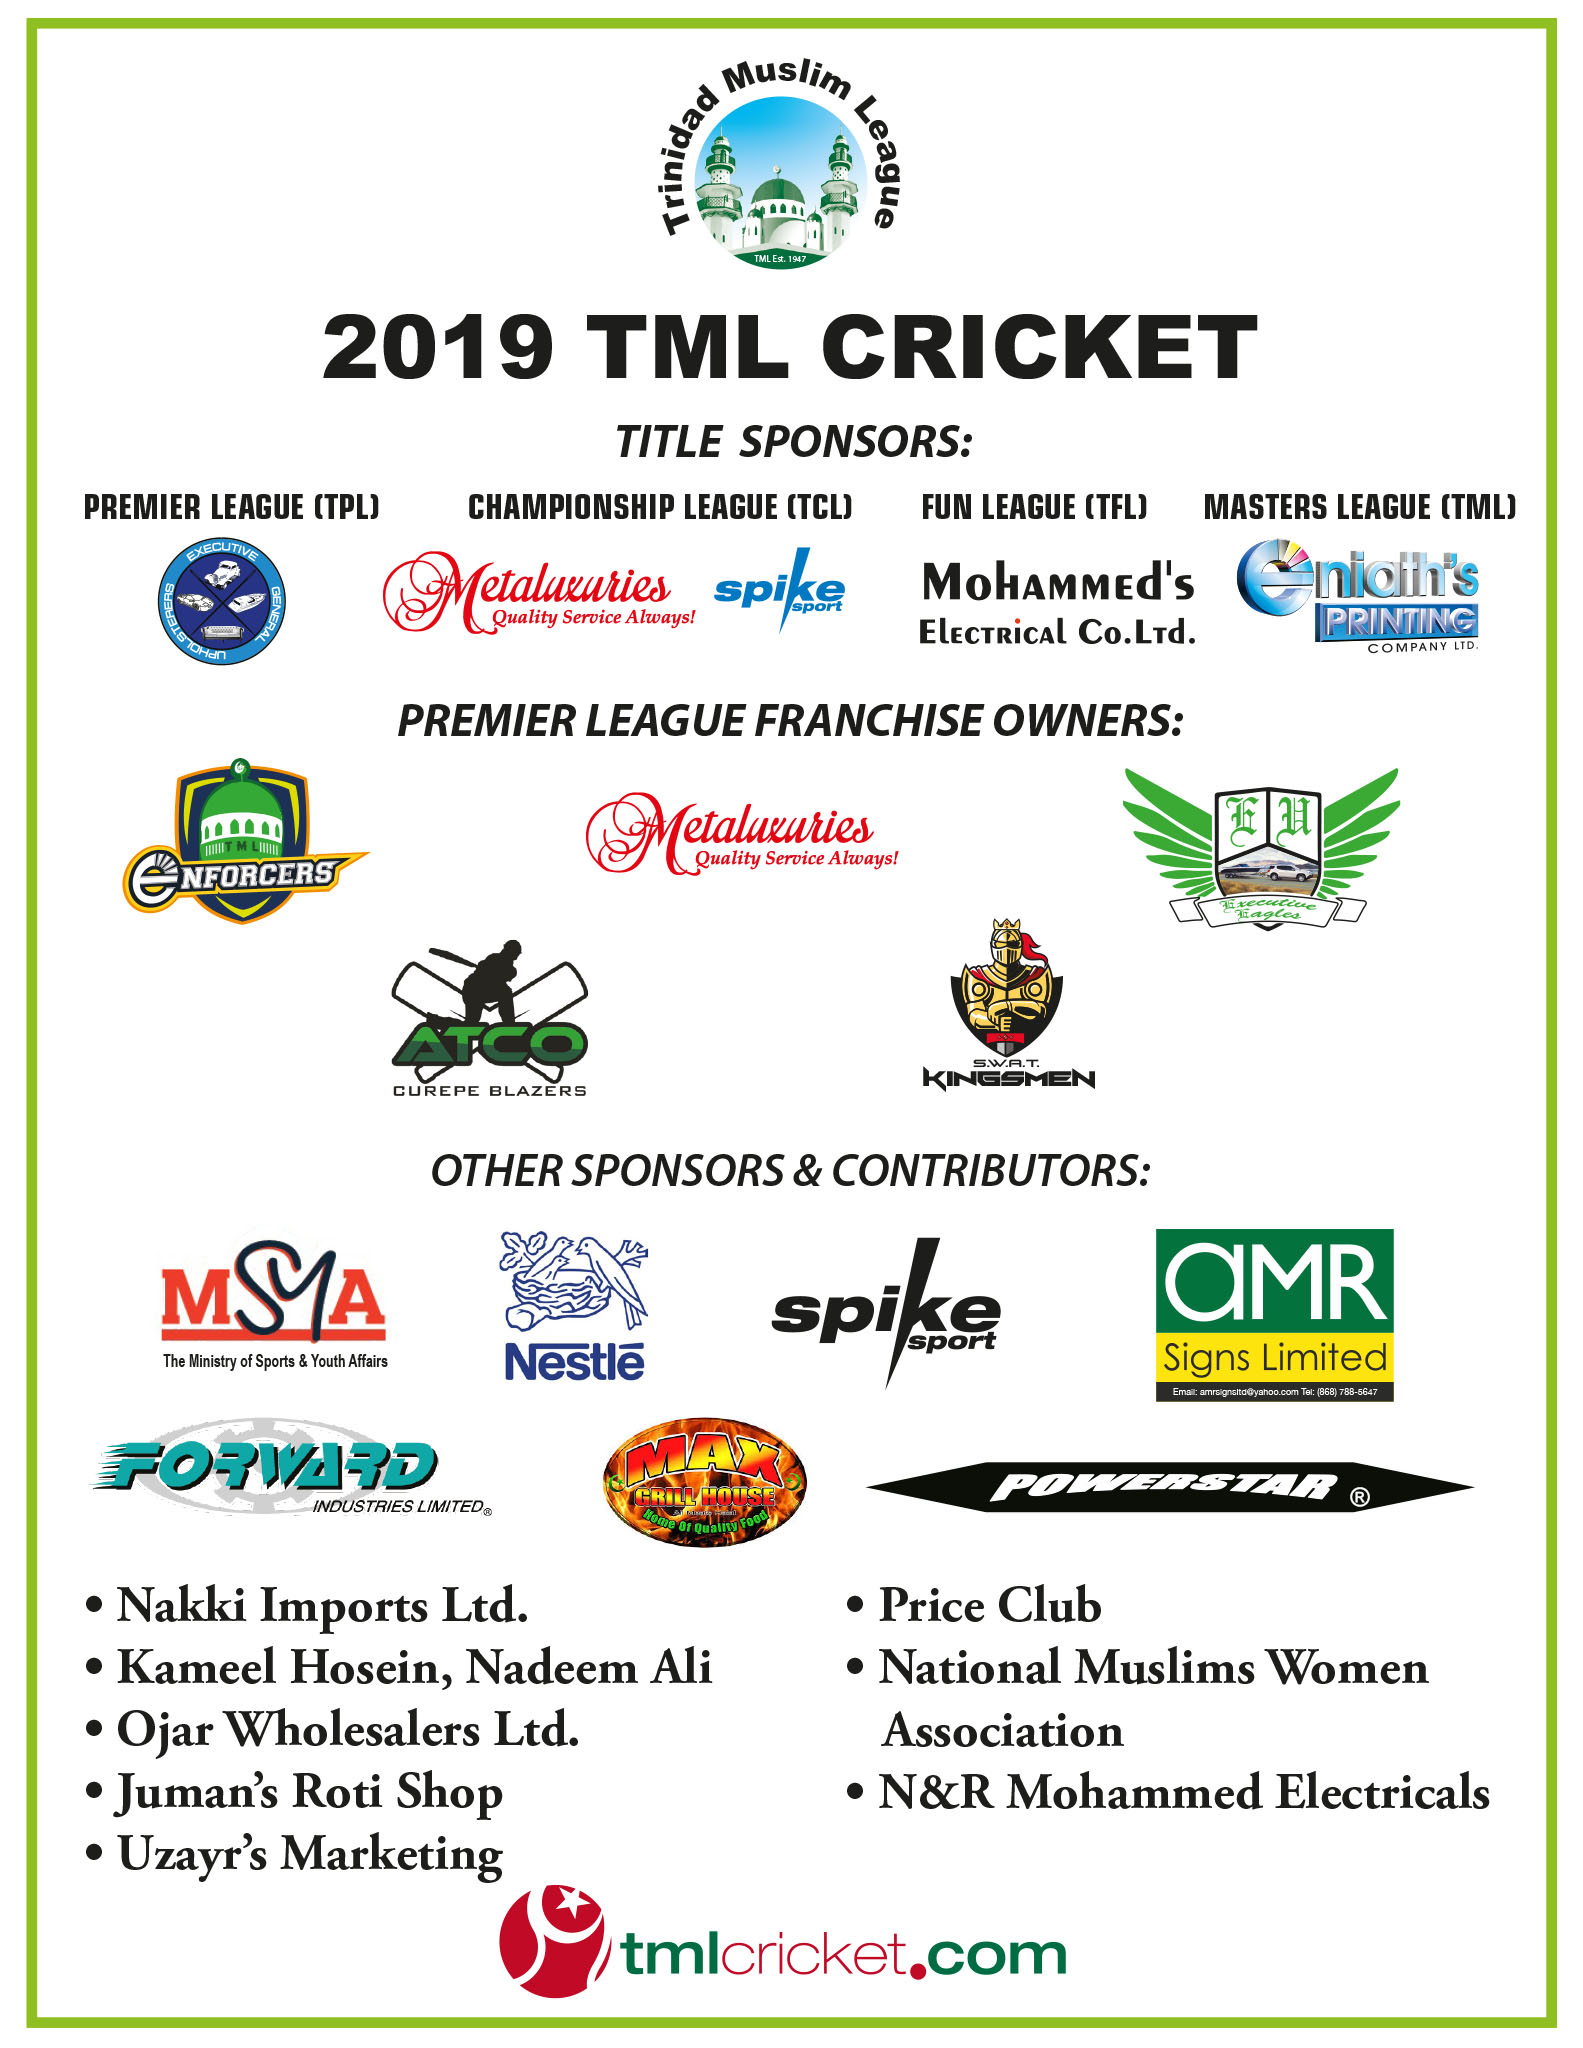 TML Cricket 2019 Competition Sponsors